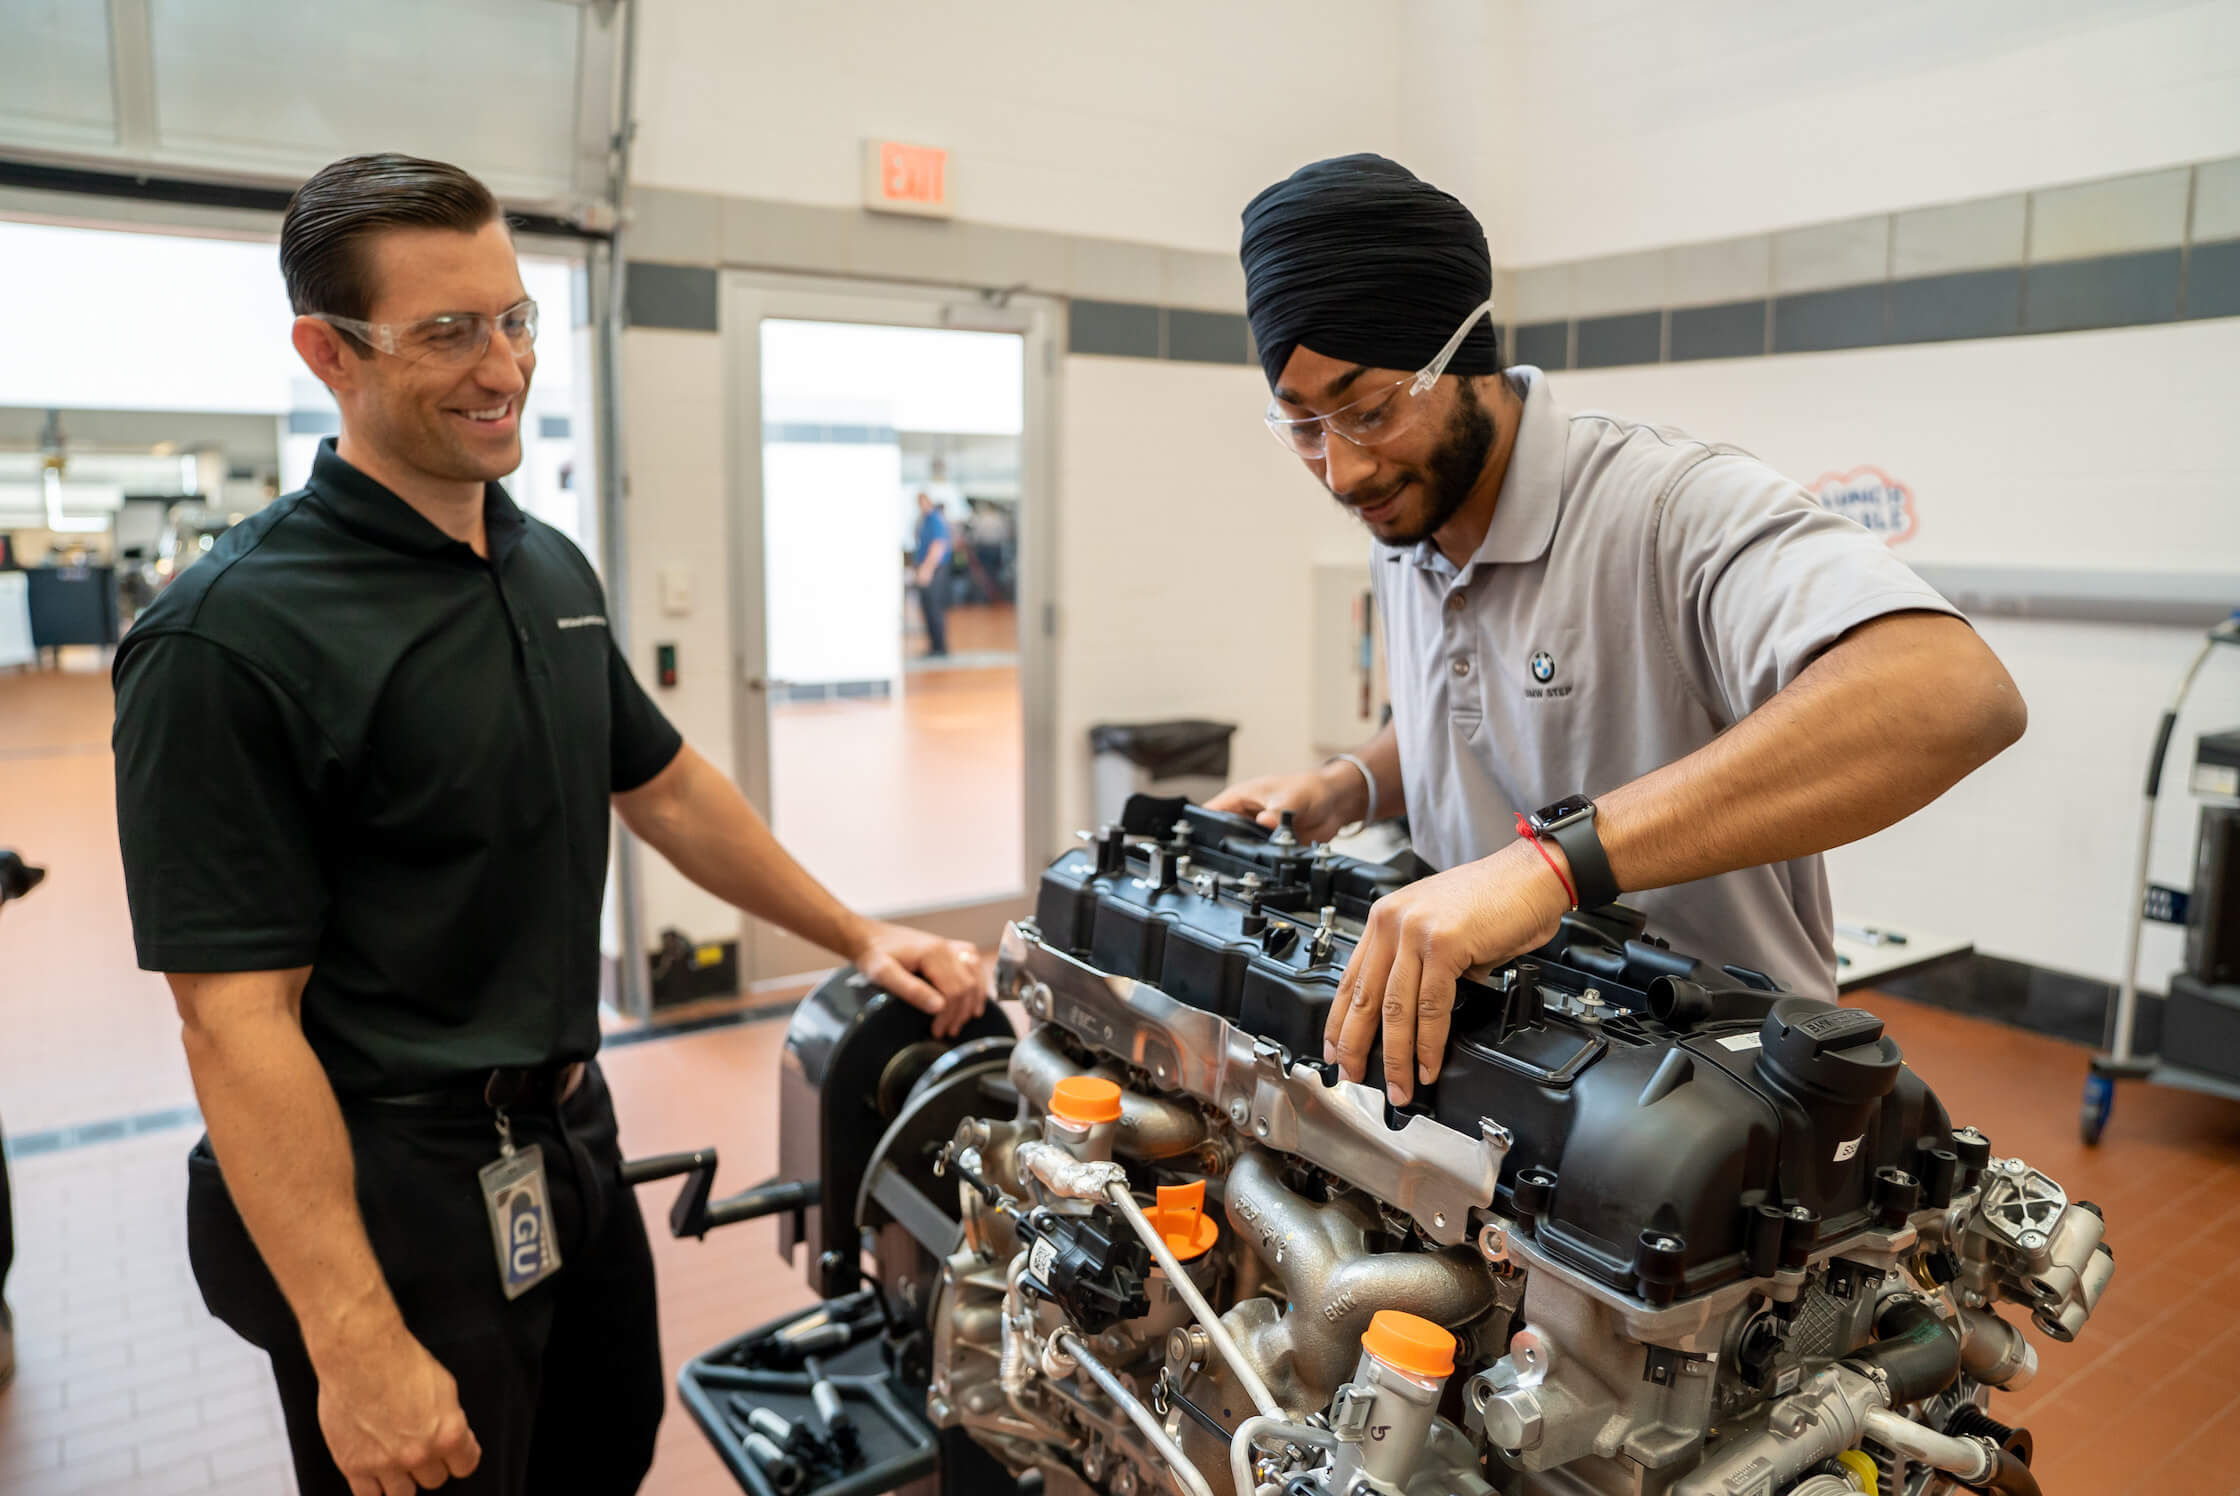 A male technician examines an engine with his STEP instructor supervising.